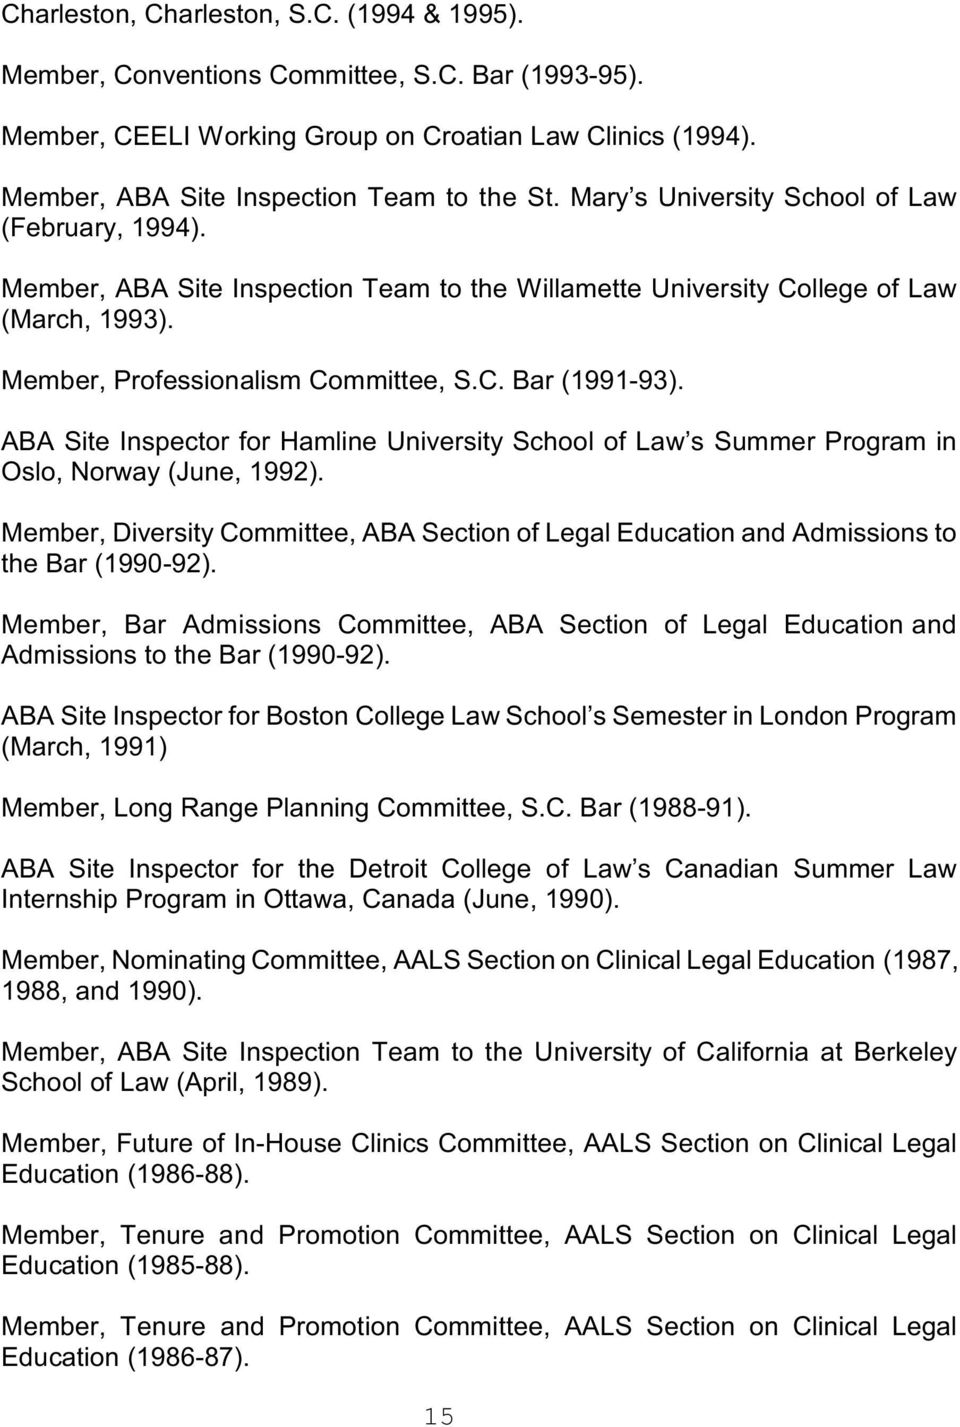 ABA Site Inspector for Hamline University School of Law s Summer Program in Oslo, Norway (June, 1992). Member, Diversity Committee, ABA Section of Legal Education and Admissions to the Bar (1990-92).